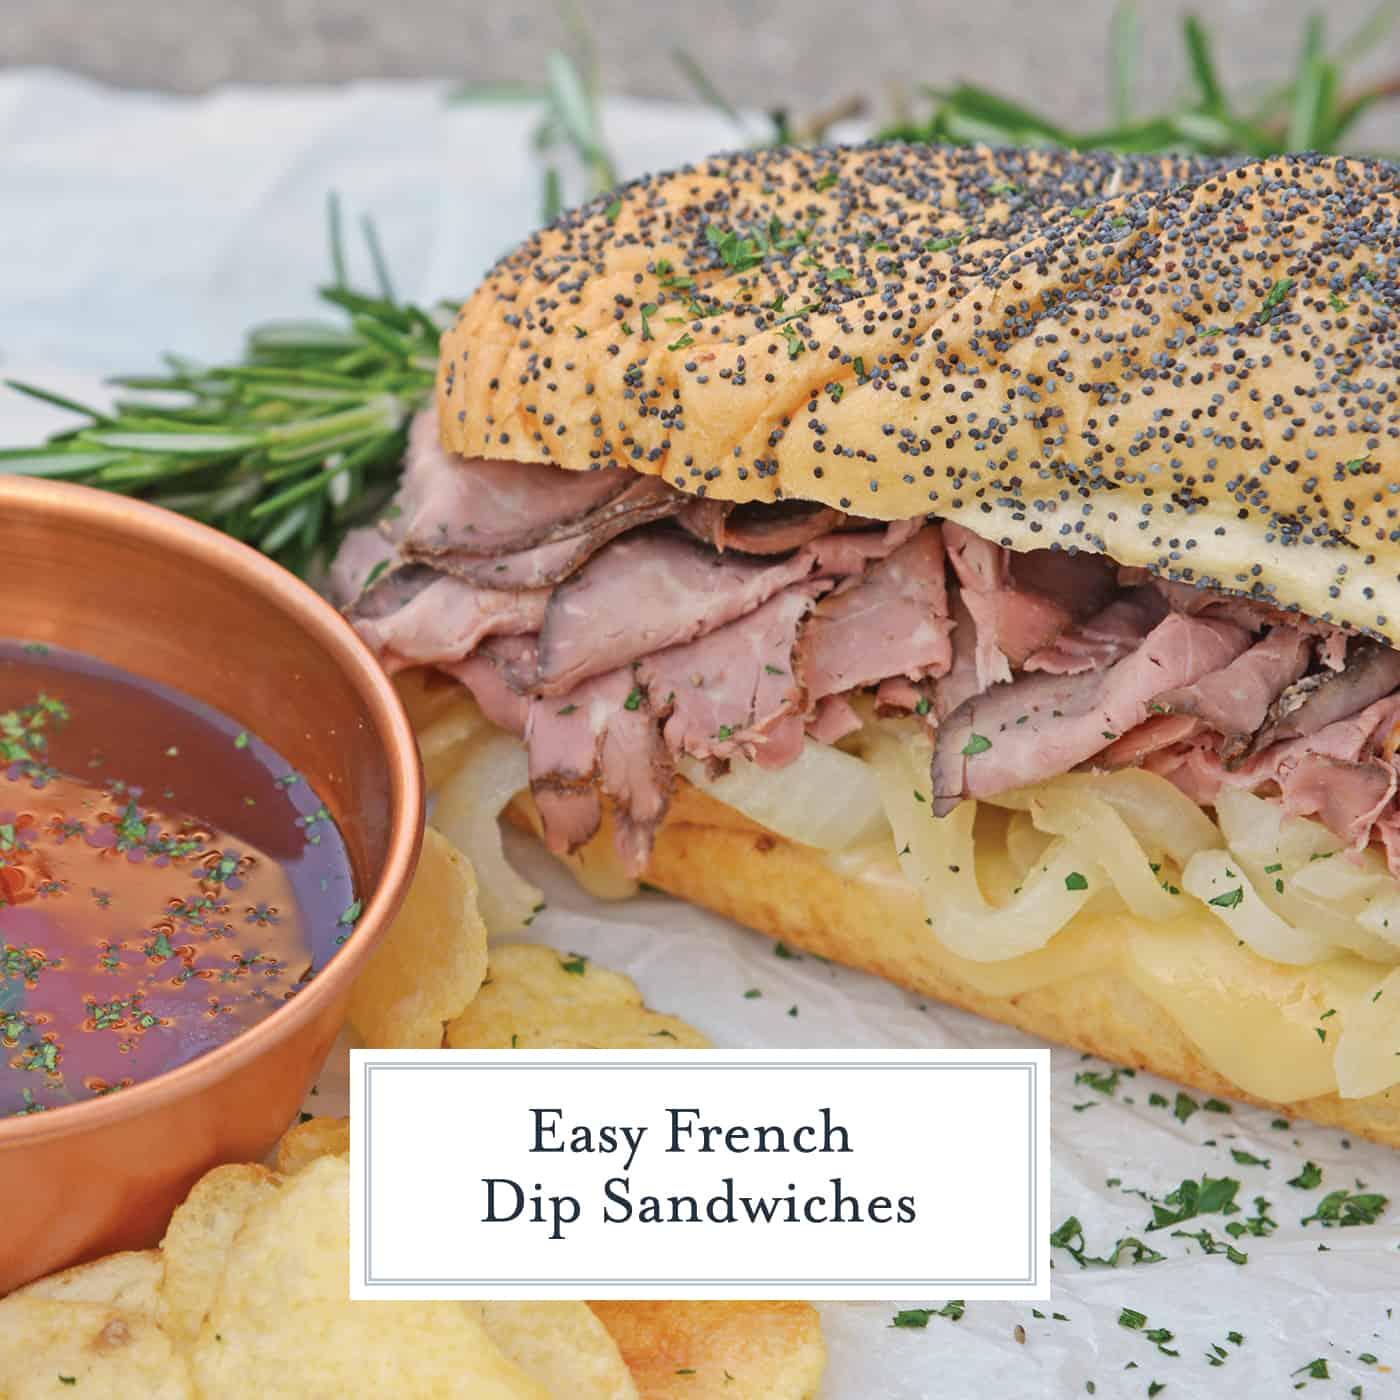 Easy French Dip Sandwiches are made from tender roast beef with caramelized onions, roasted garlic, whipped horseradish cream sauce on brioche rolls! #roastbeefsandwich #frenchdipsandwiches www.savoryexperiments.com